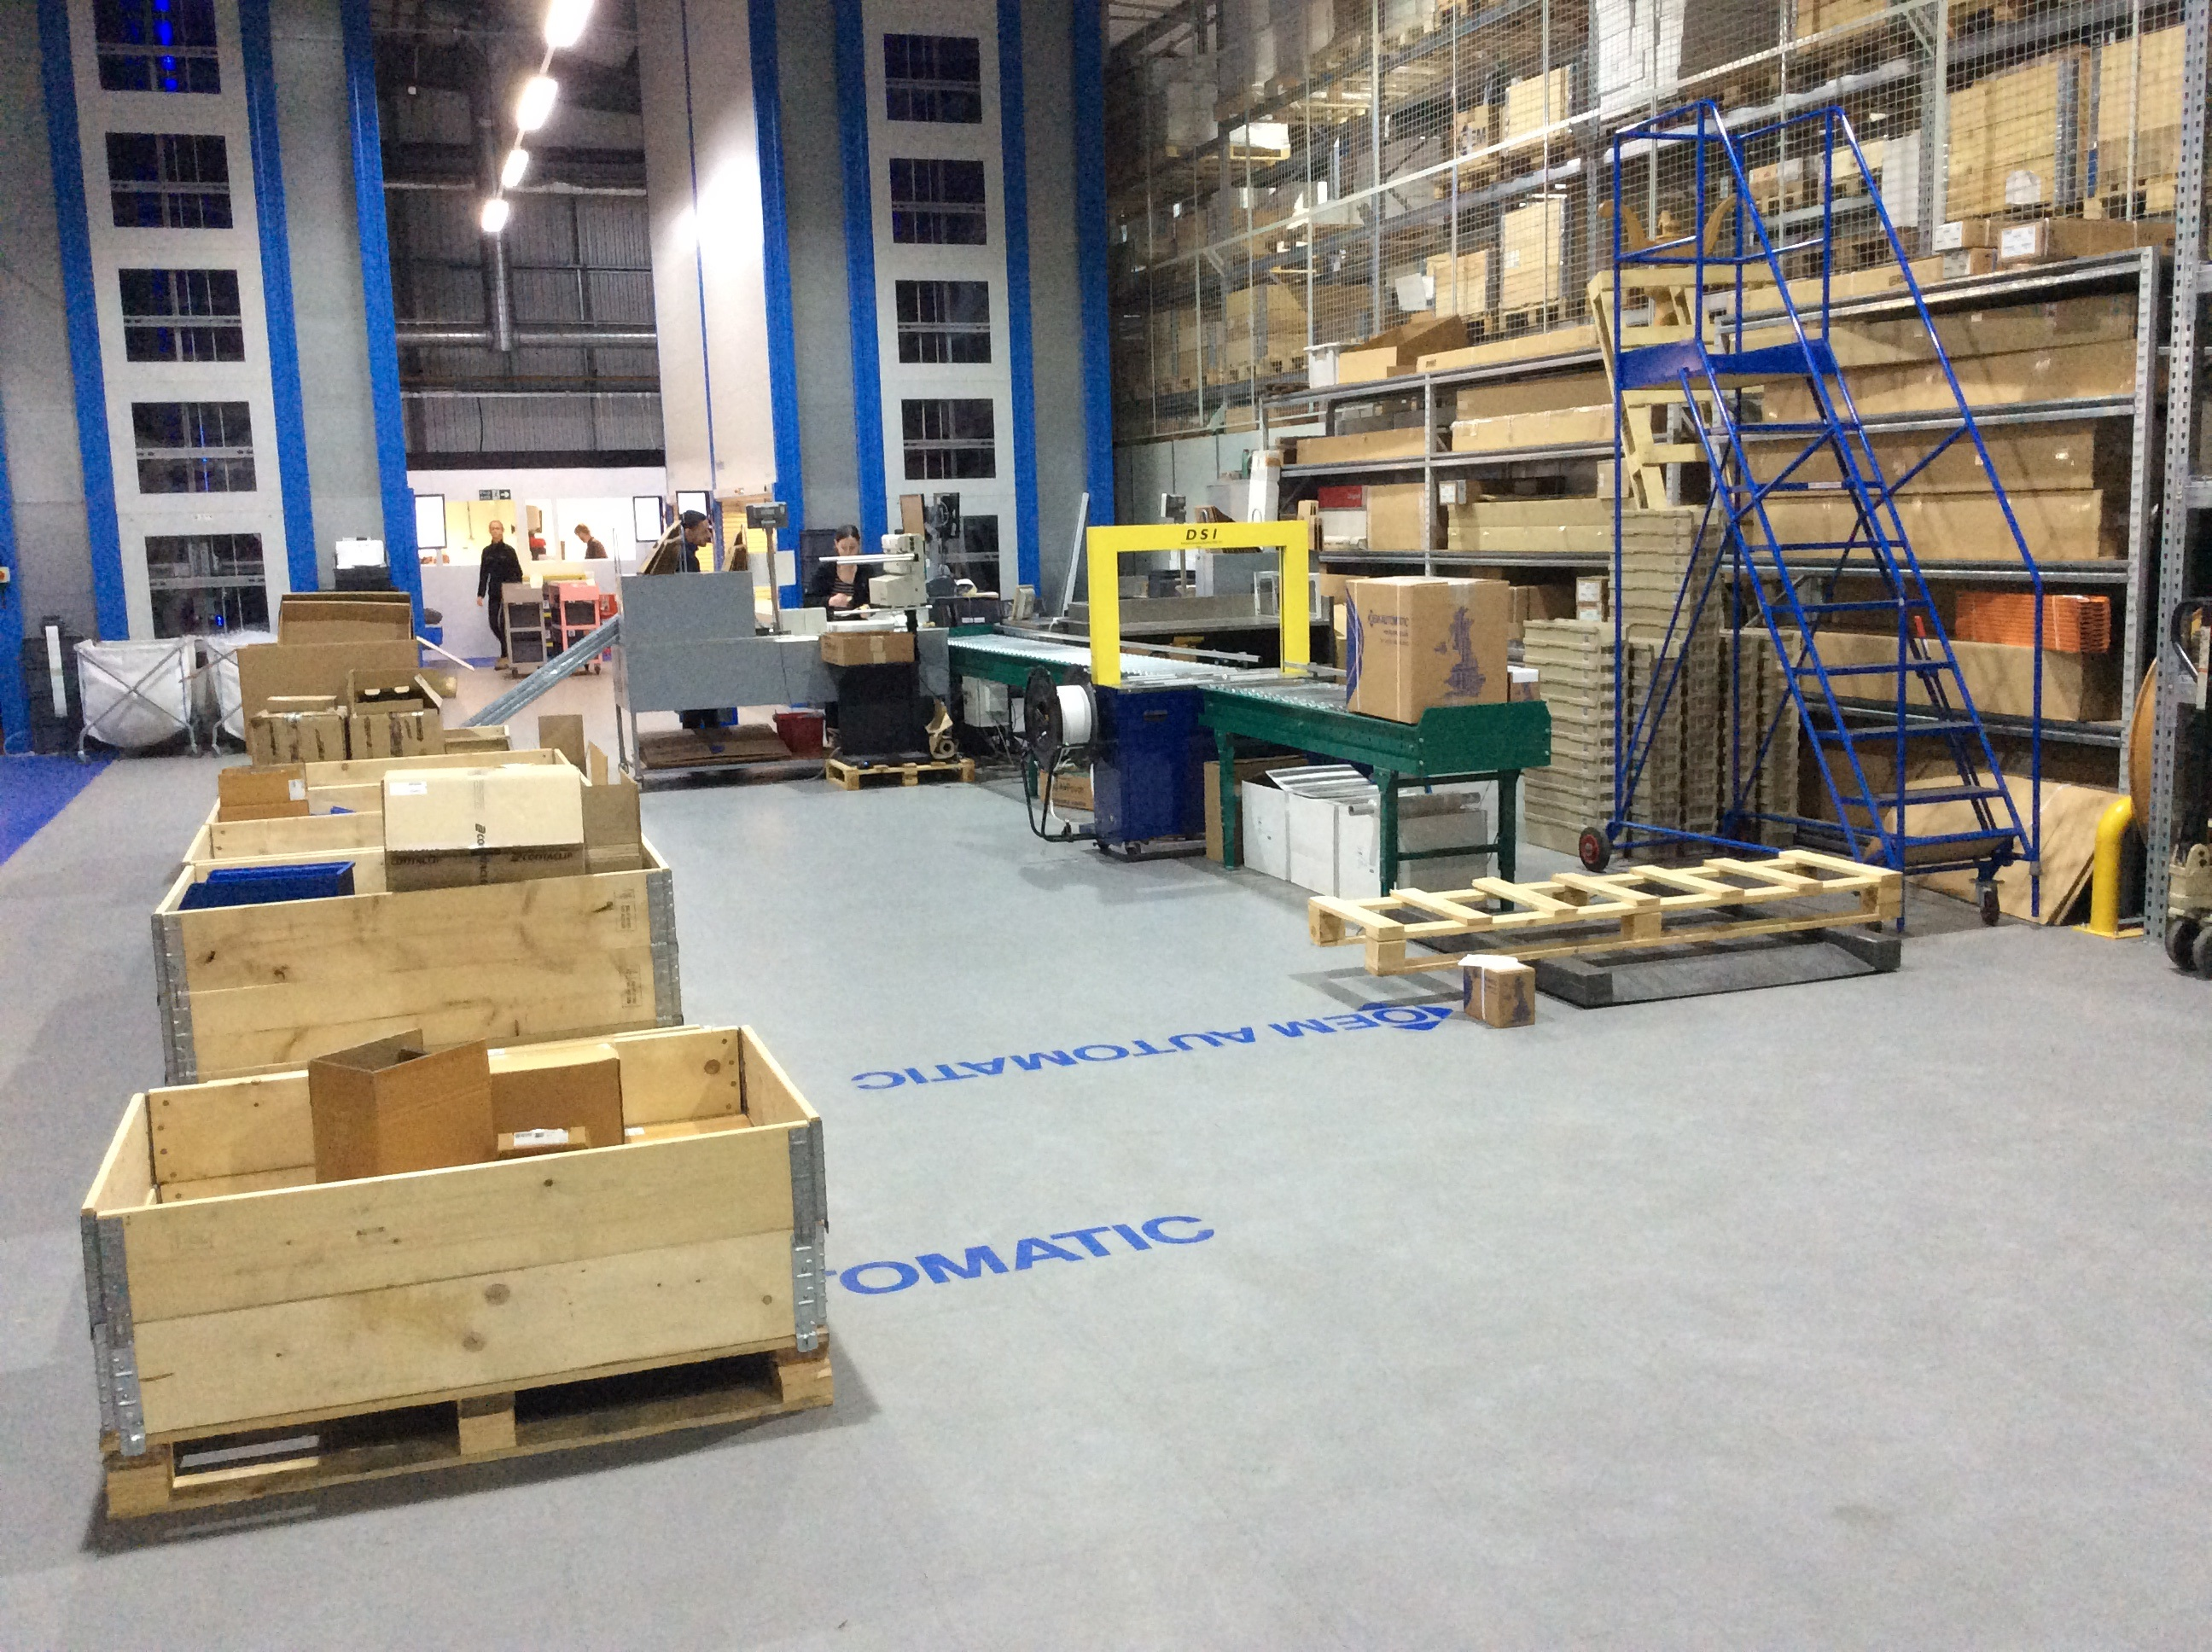 Ecotile Flooring In A Warehouse - The Value Of Exhibitions